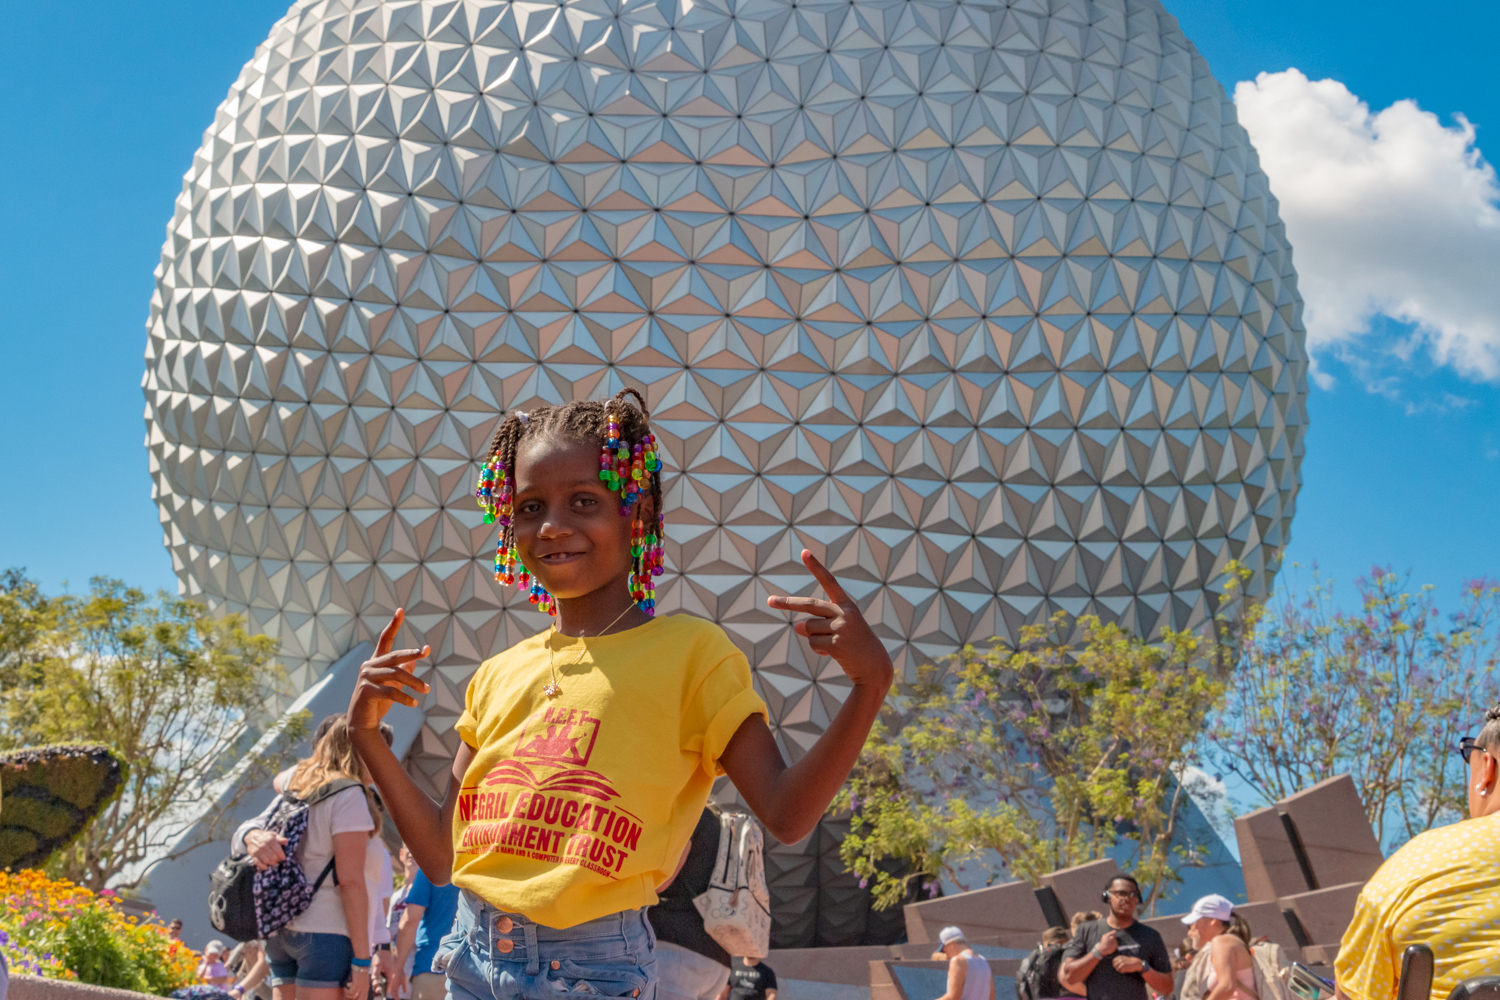 Student poses at Disney World